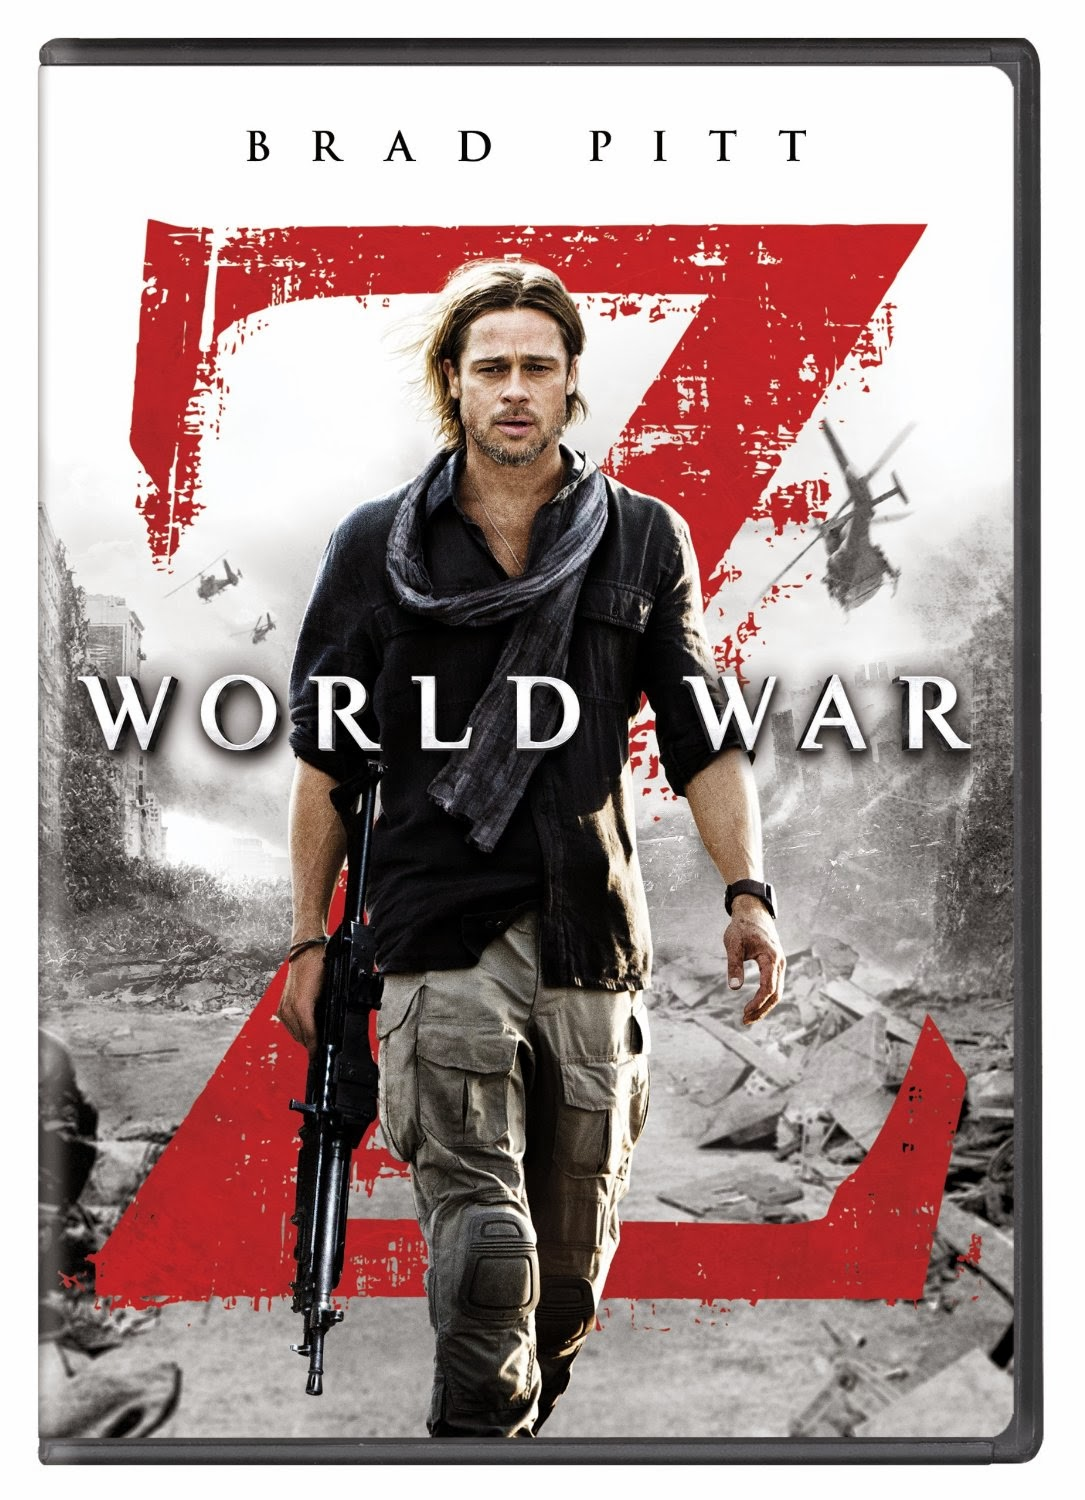 Robert's Sister: Robert's Sister Goes to the Movies: World War Z